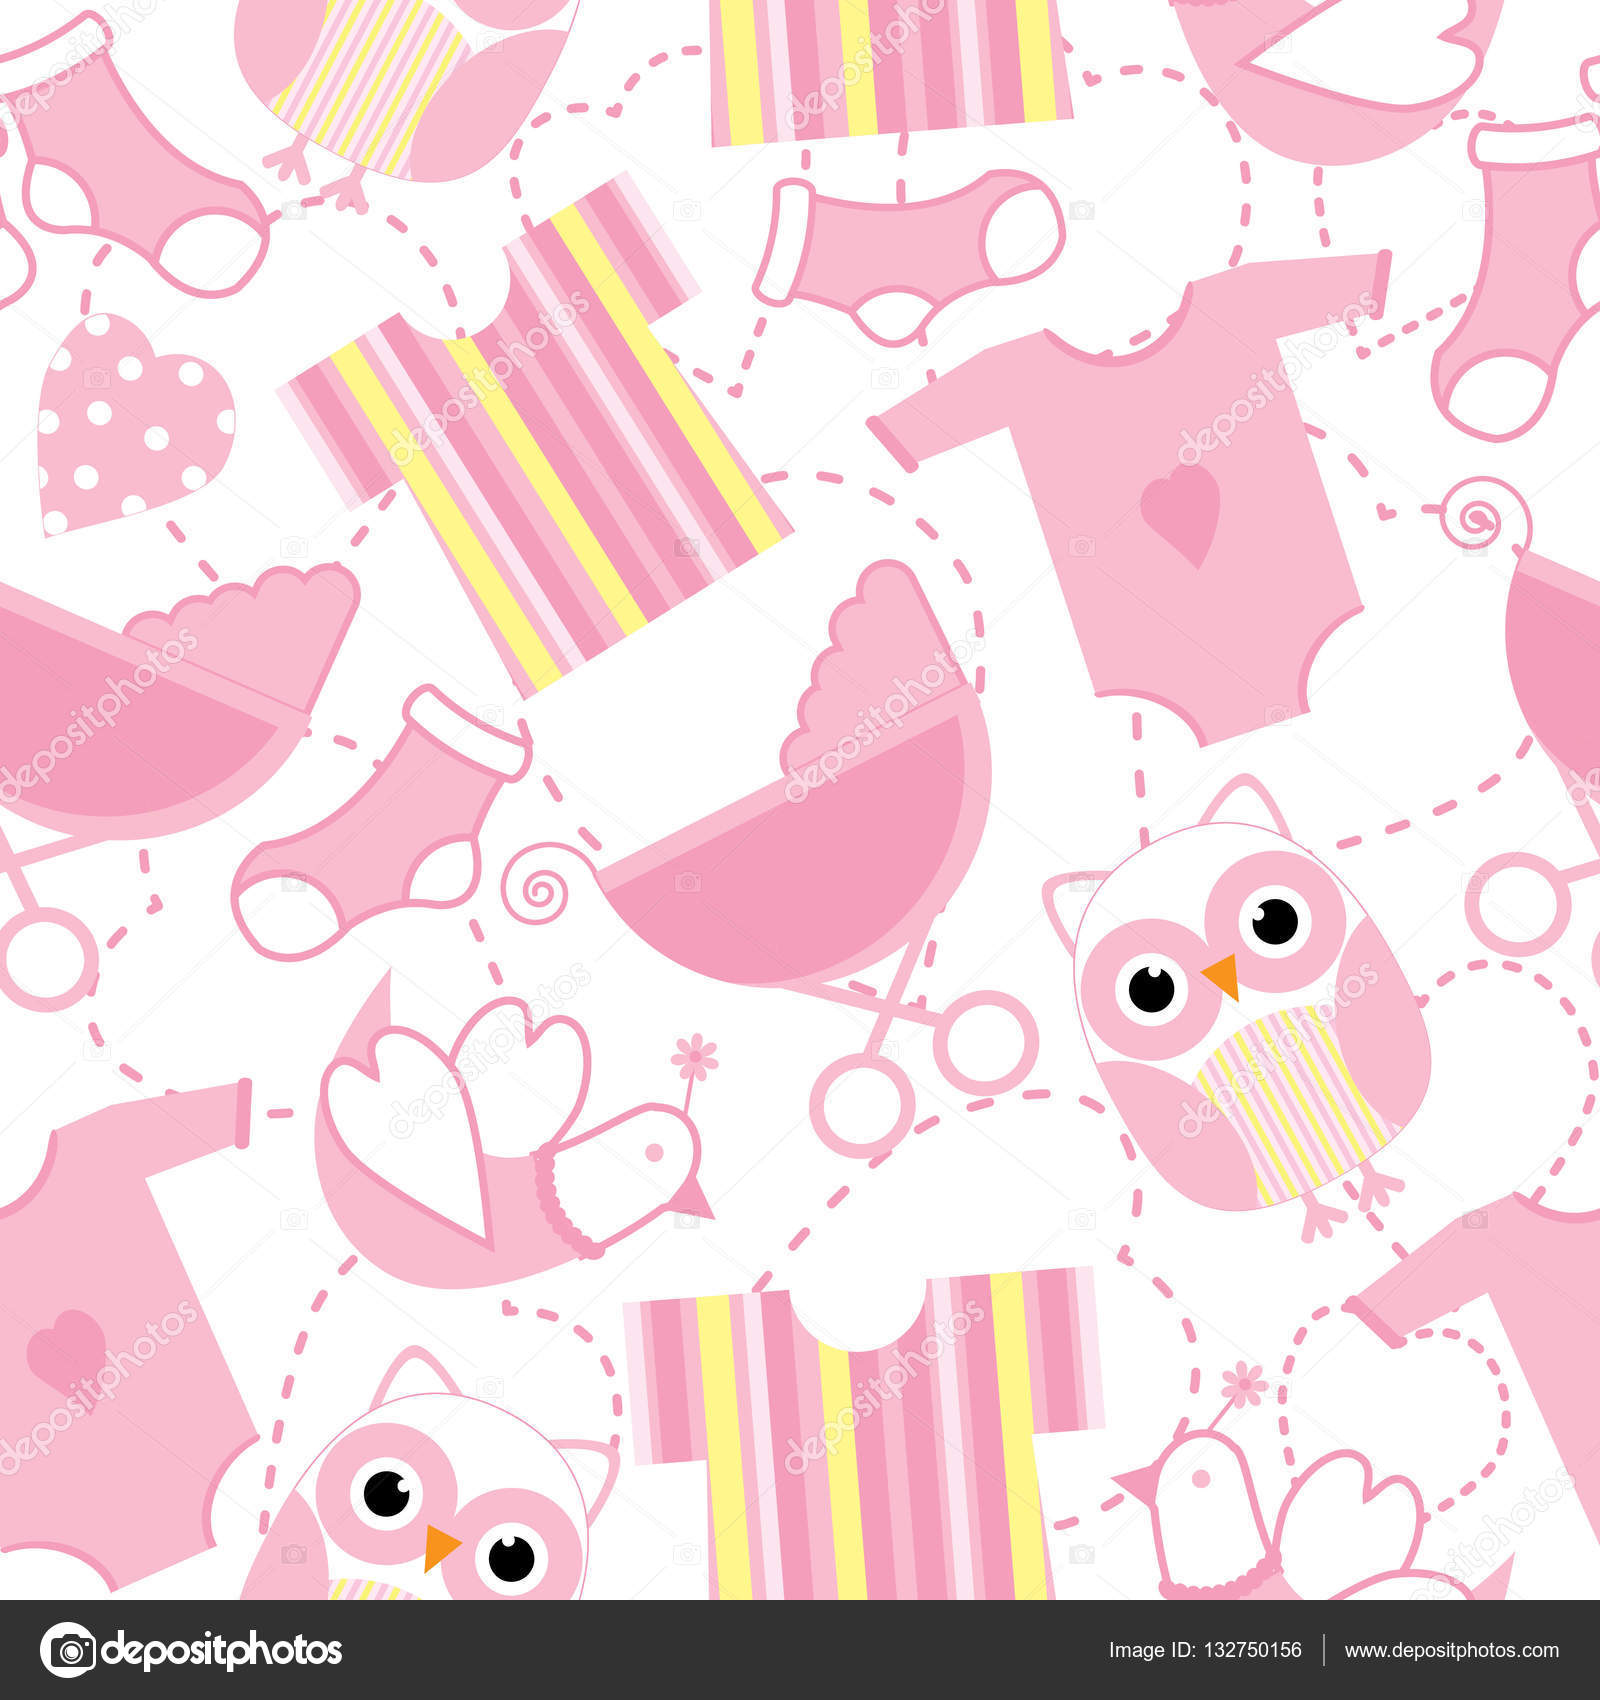 baby shower wallpaper | Wallpaper sportstle